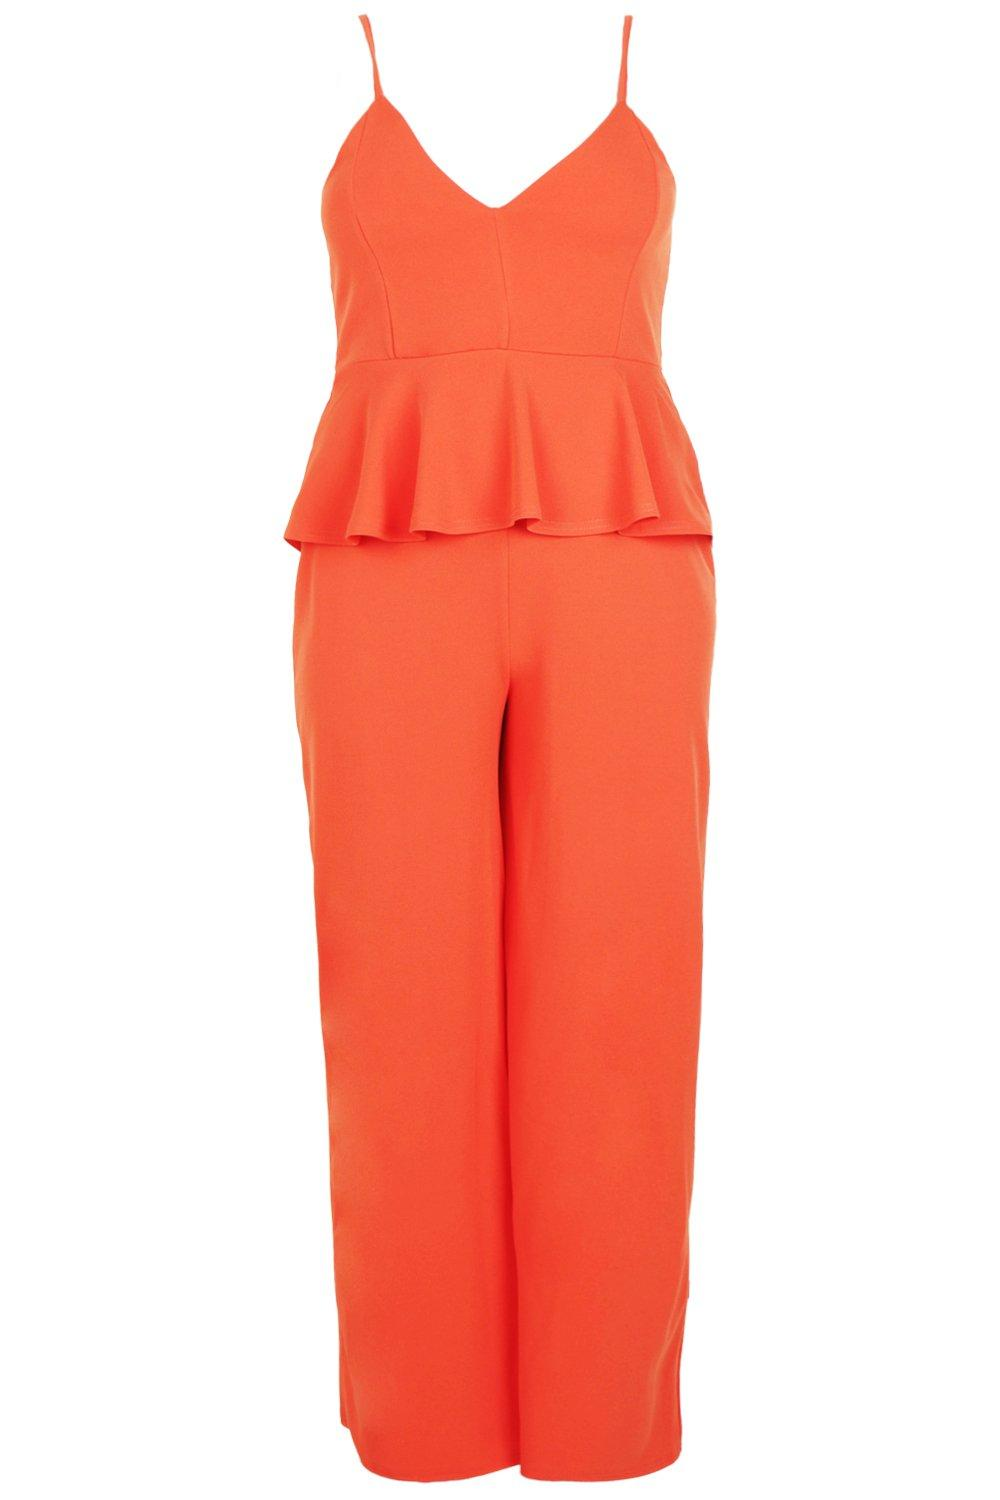 7d88c3add6d Boohoo Womens Plus Strappy Peplum Jumpsuit in Orange size 18